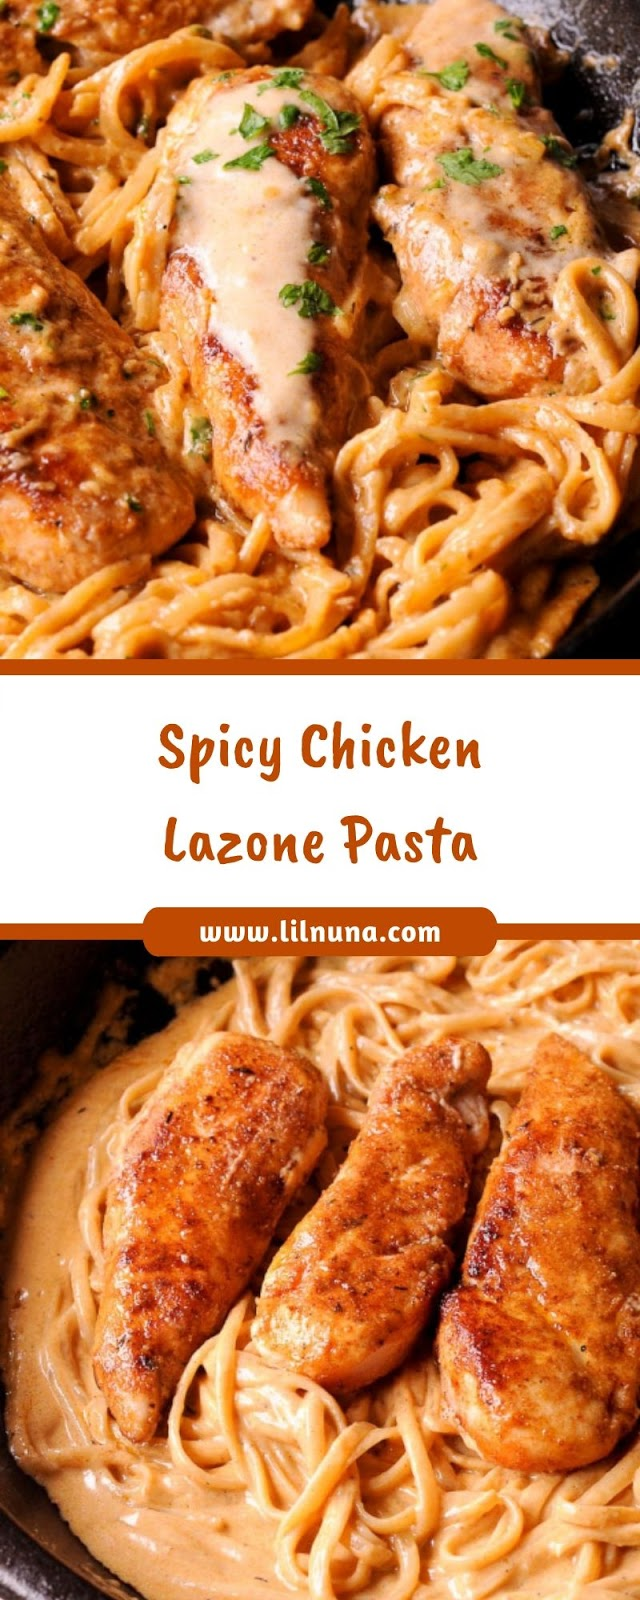 Spicy Chicken Lazone Pasta